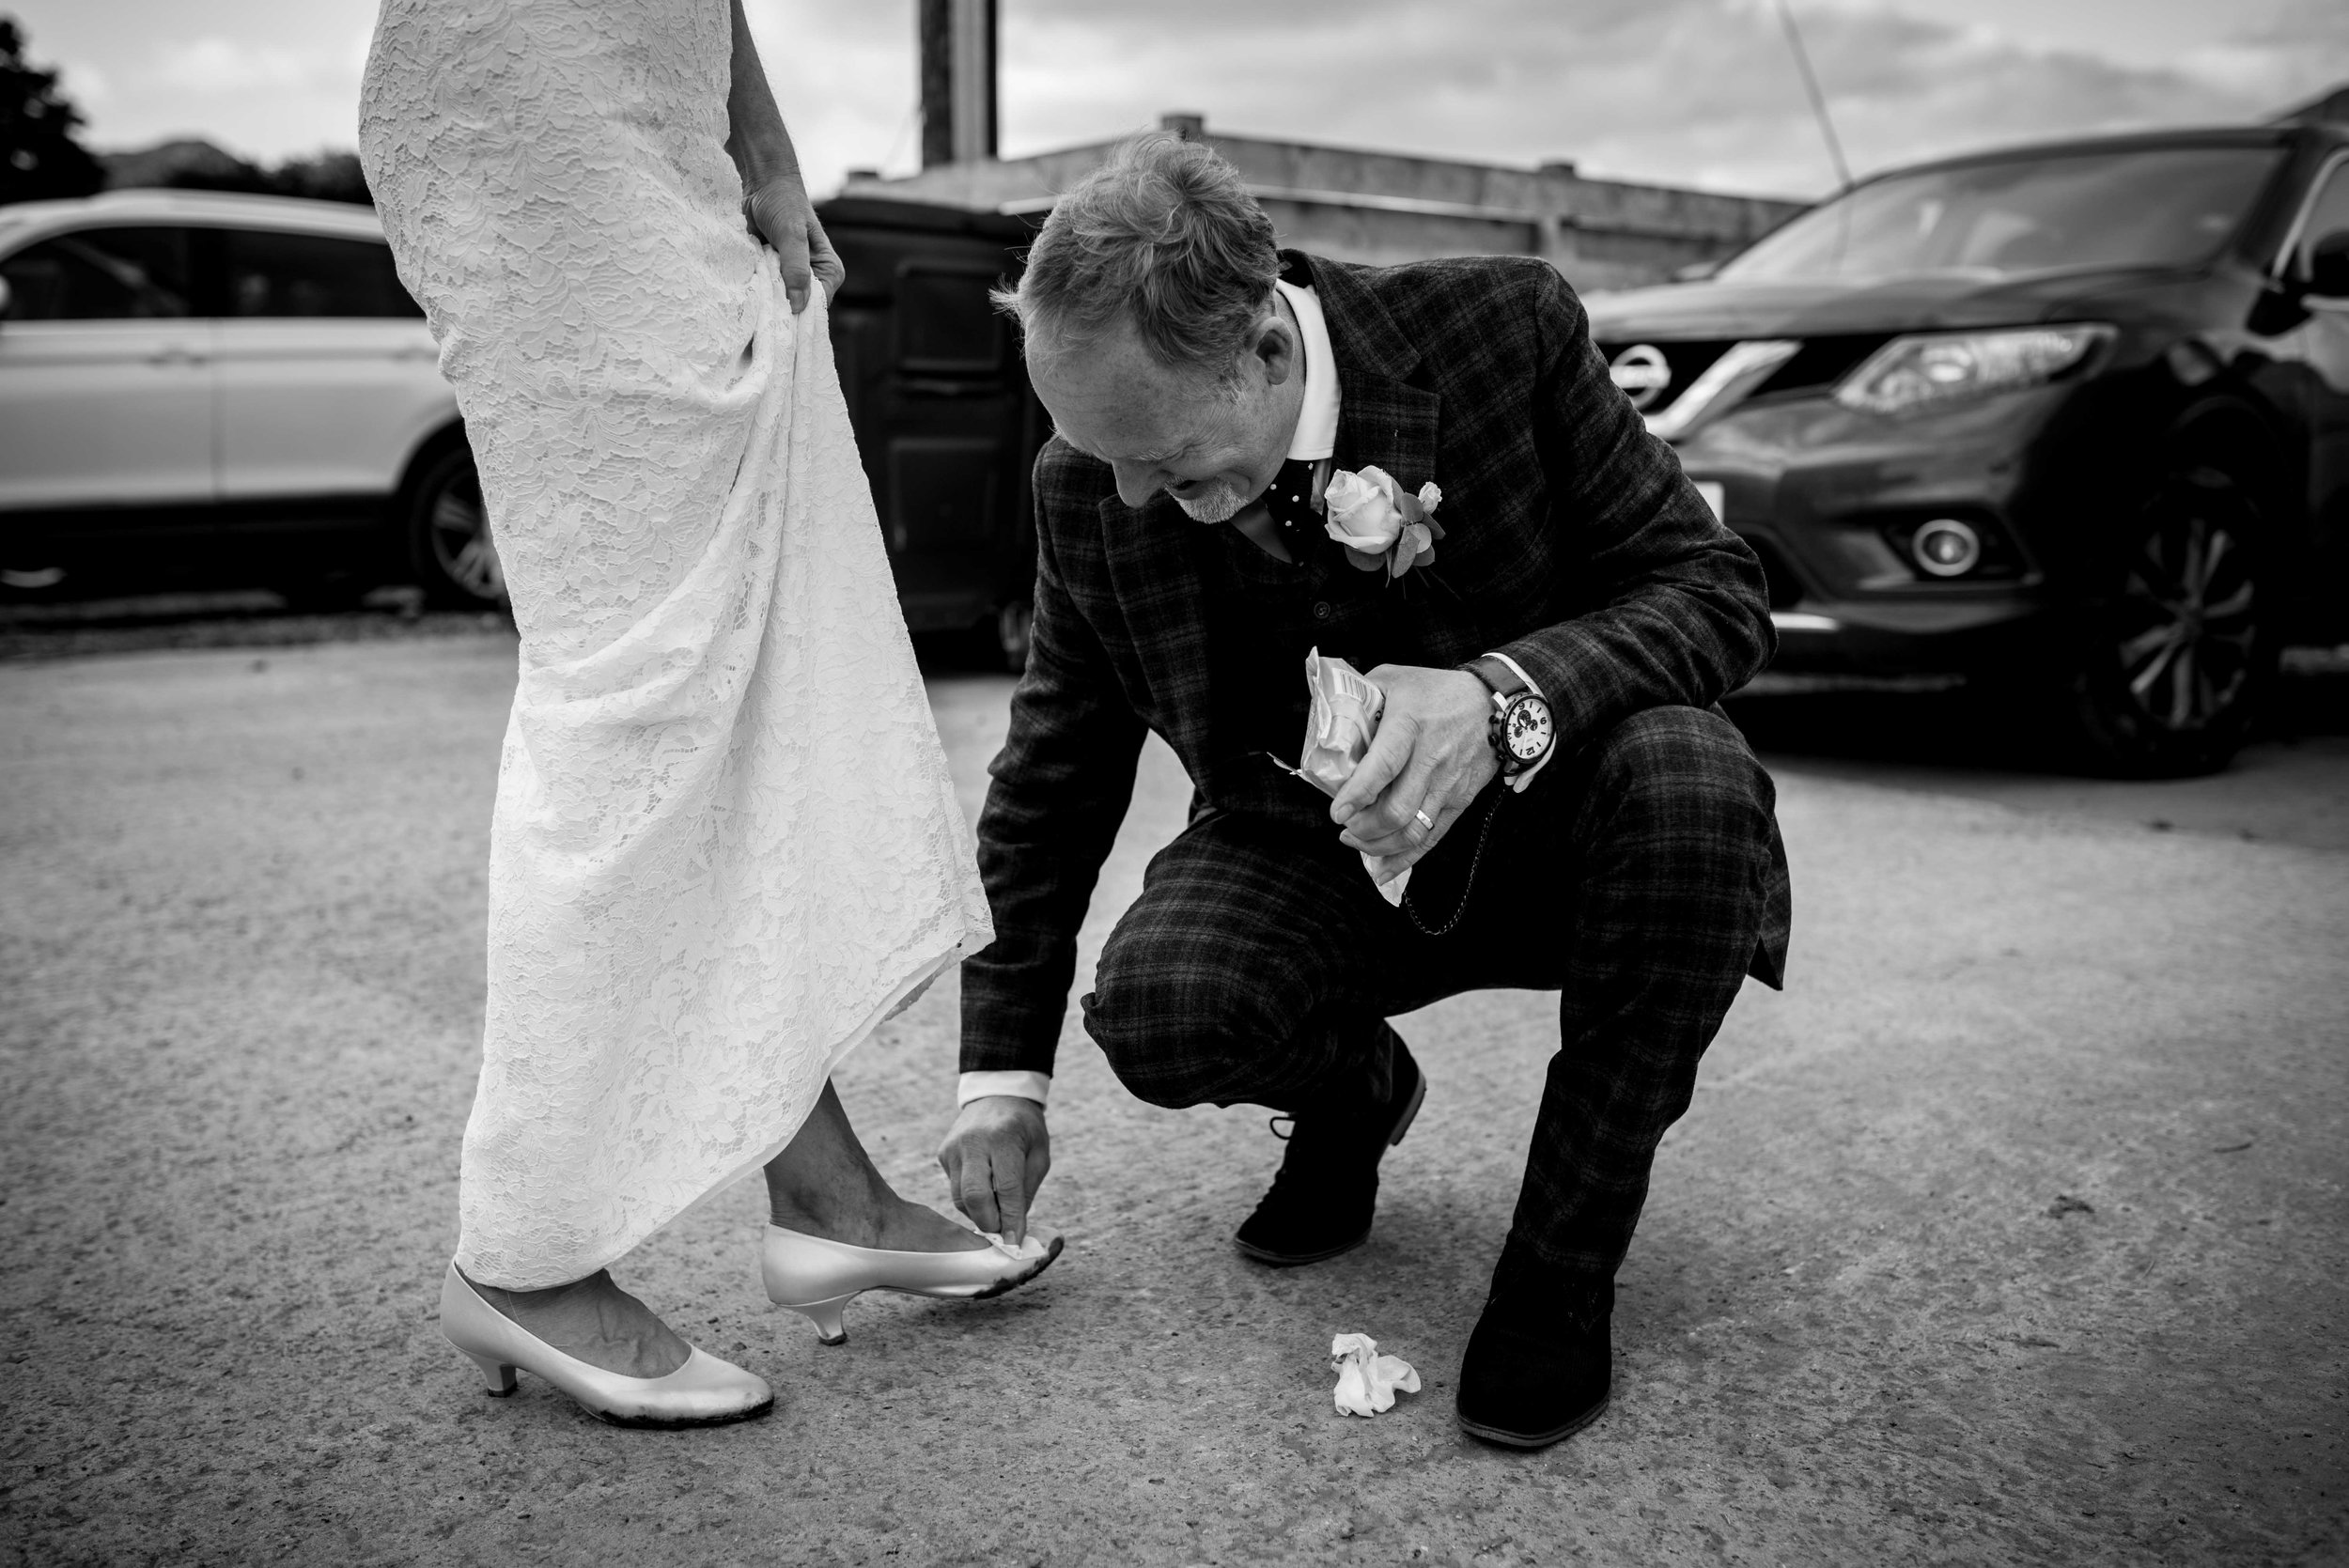 The groom stoops to clean mud off the brides shoes